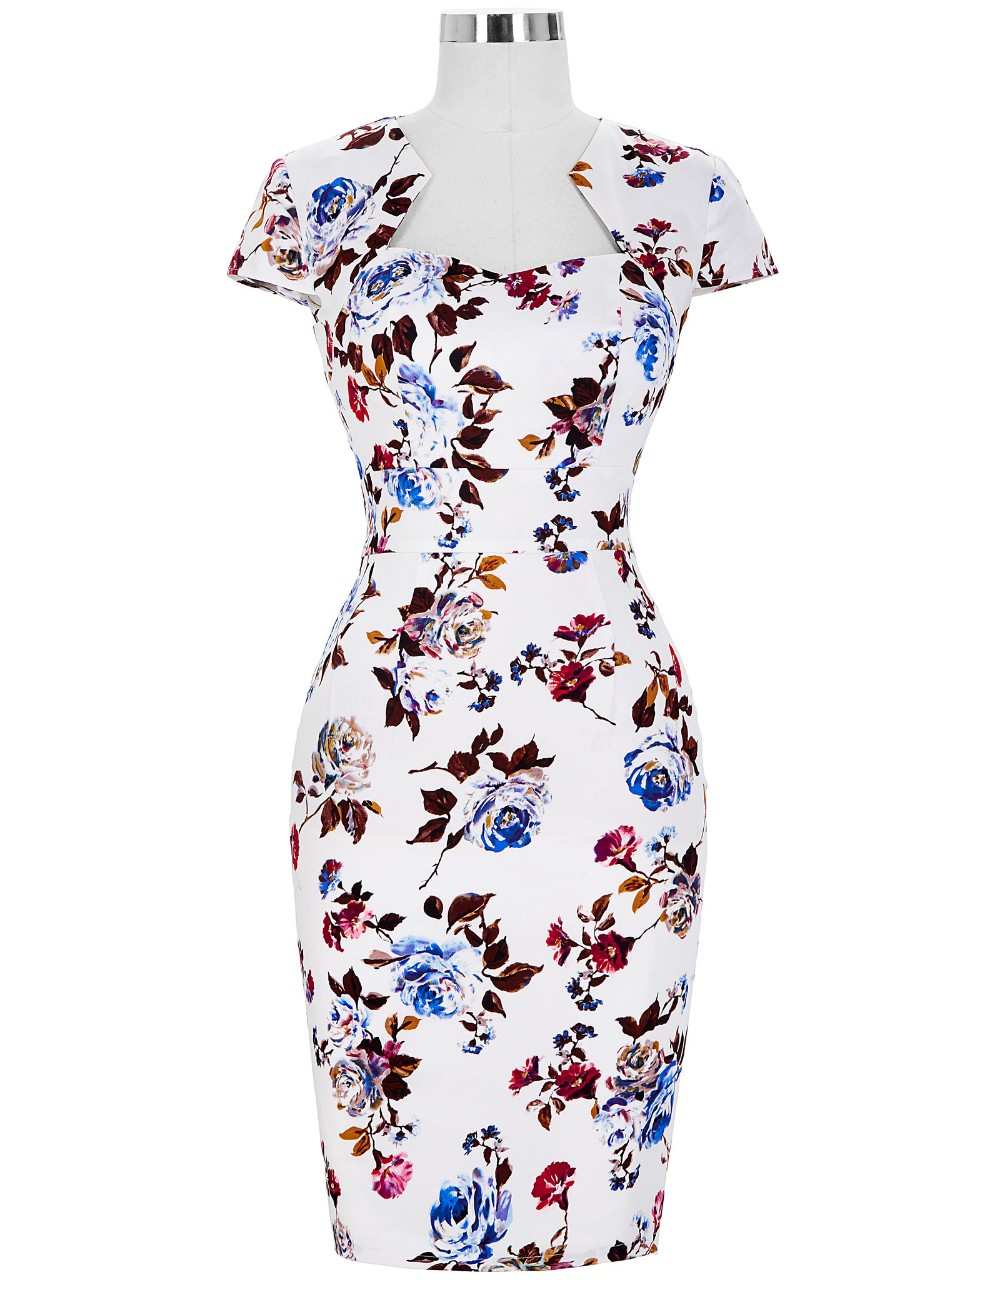 Women Plus Size Pencil Dresses Rockabilly Clothing 2018 Floral Summer Casual Party Office Dress Sexy 50s Vintage Bodycon Dress 21